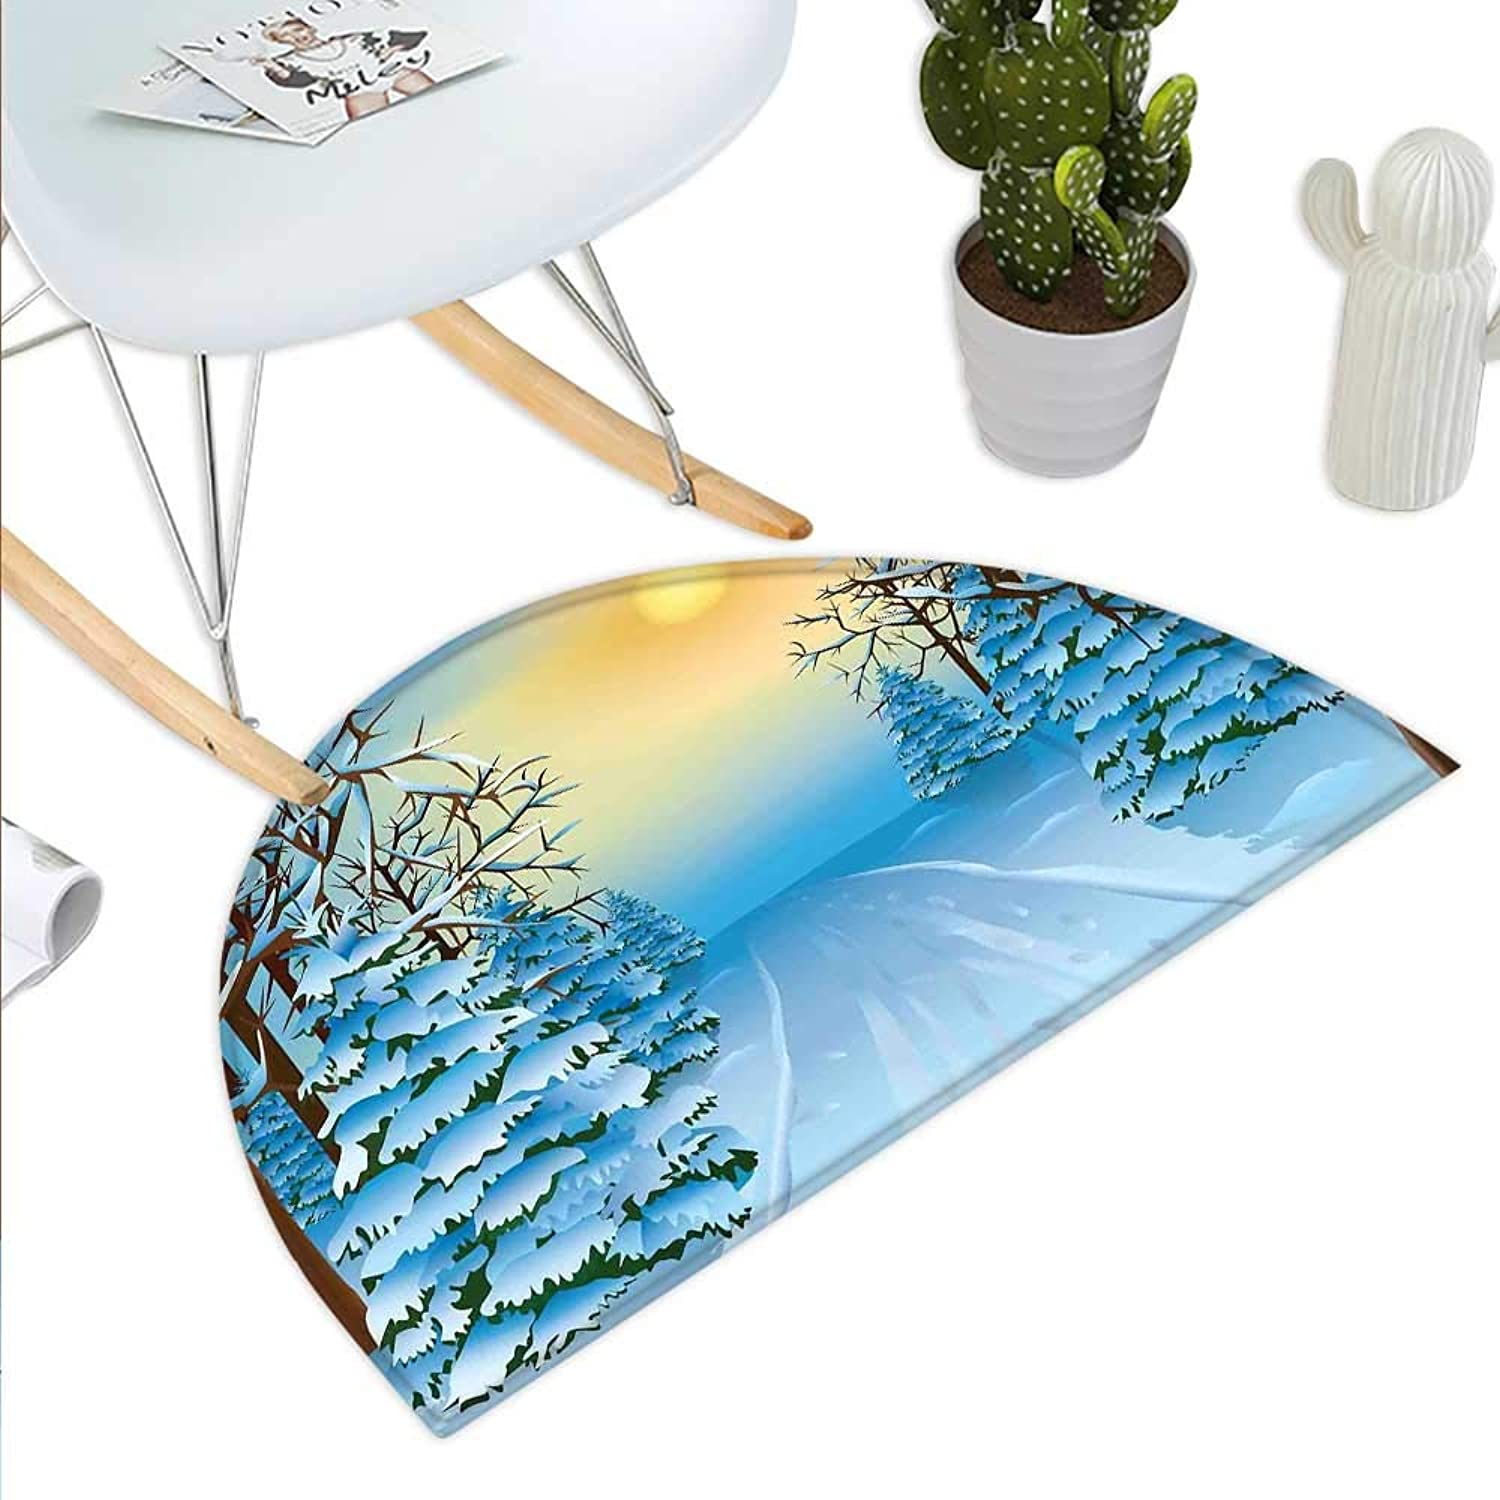 Winter Semicircle Doormat Forest View Graphic Display Print with Snowy Path Between Trees and Sun on Sky Halfmoon doormats H 35.4  xD 53.1  bluee Yellow